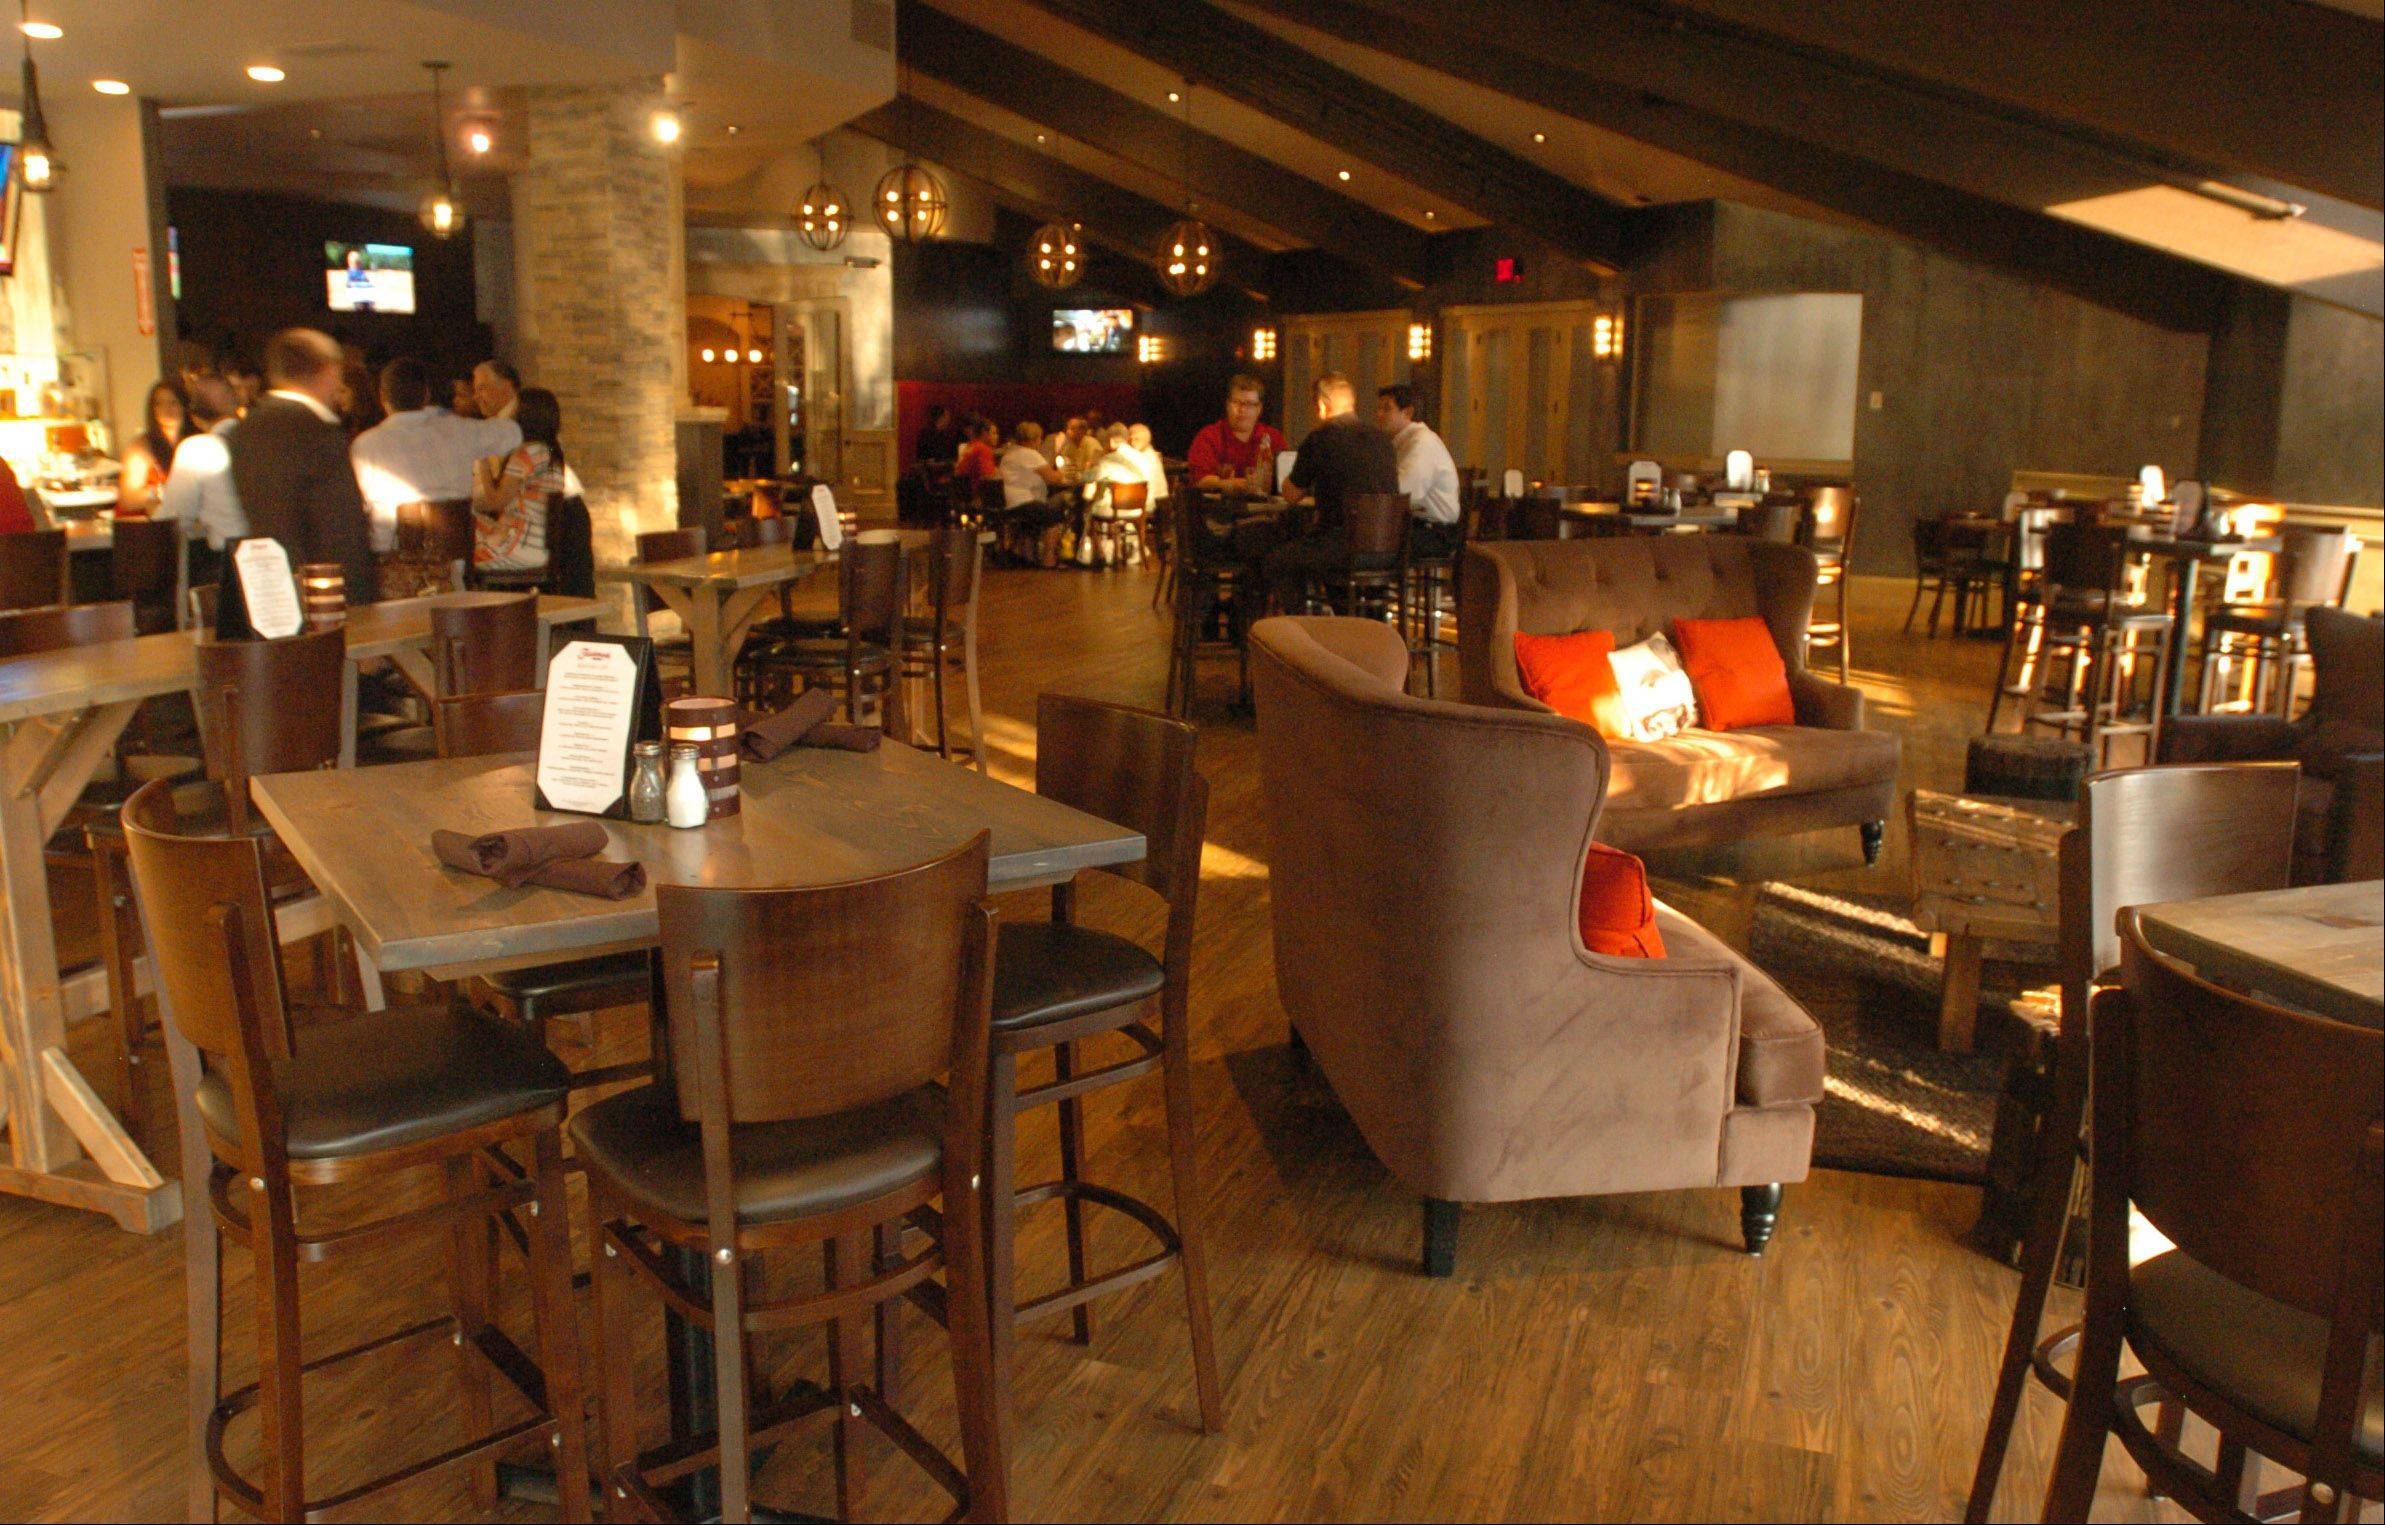 Trademark Tavern in Lombard comes across as upscale yet casual.